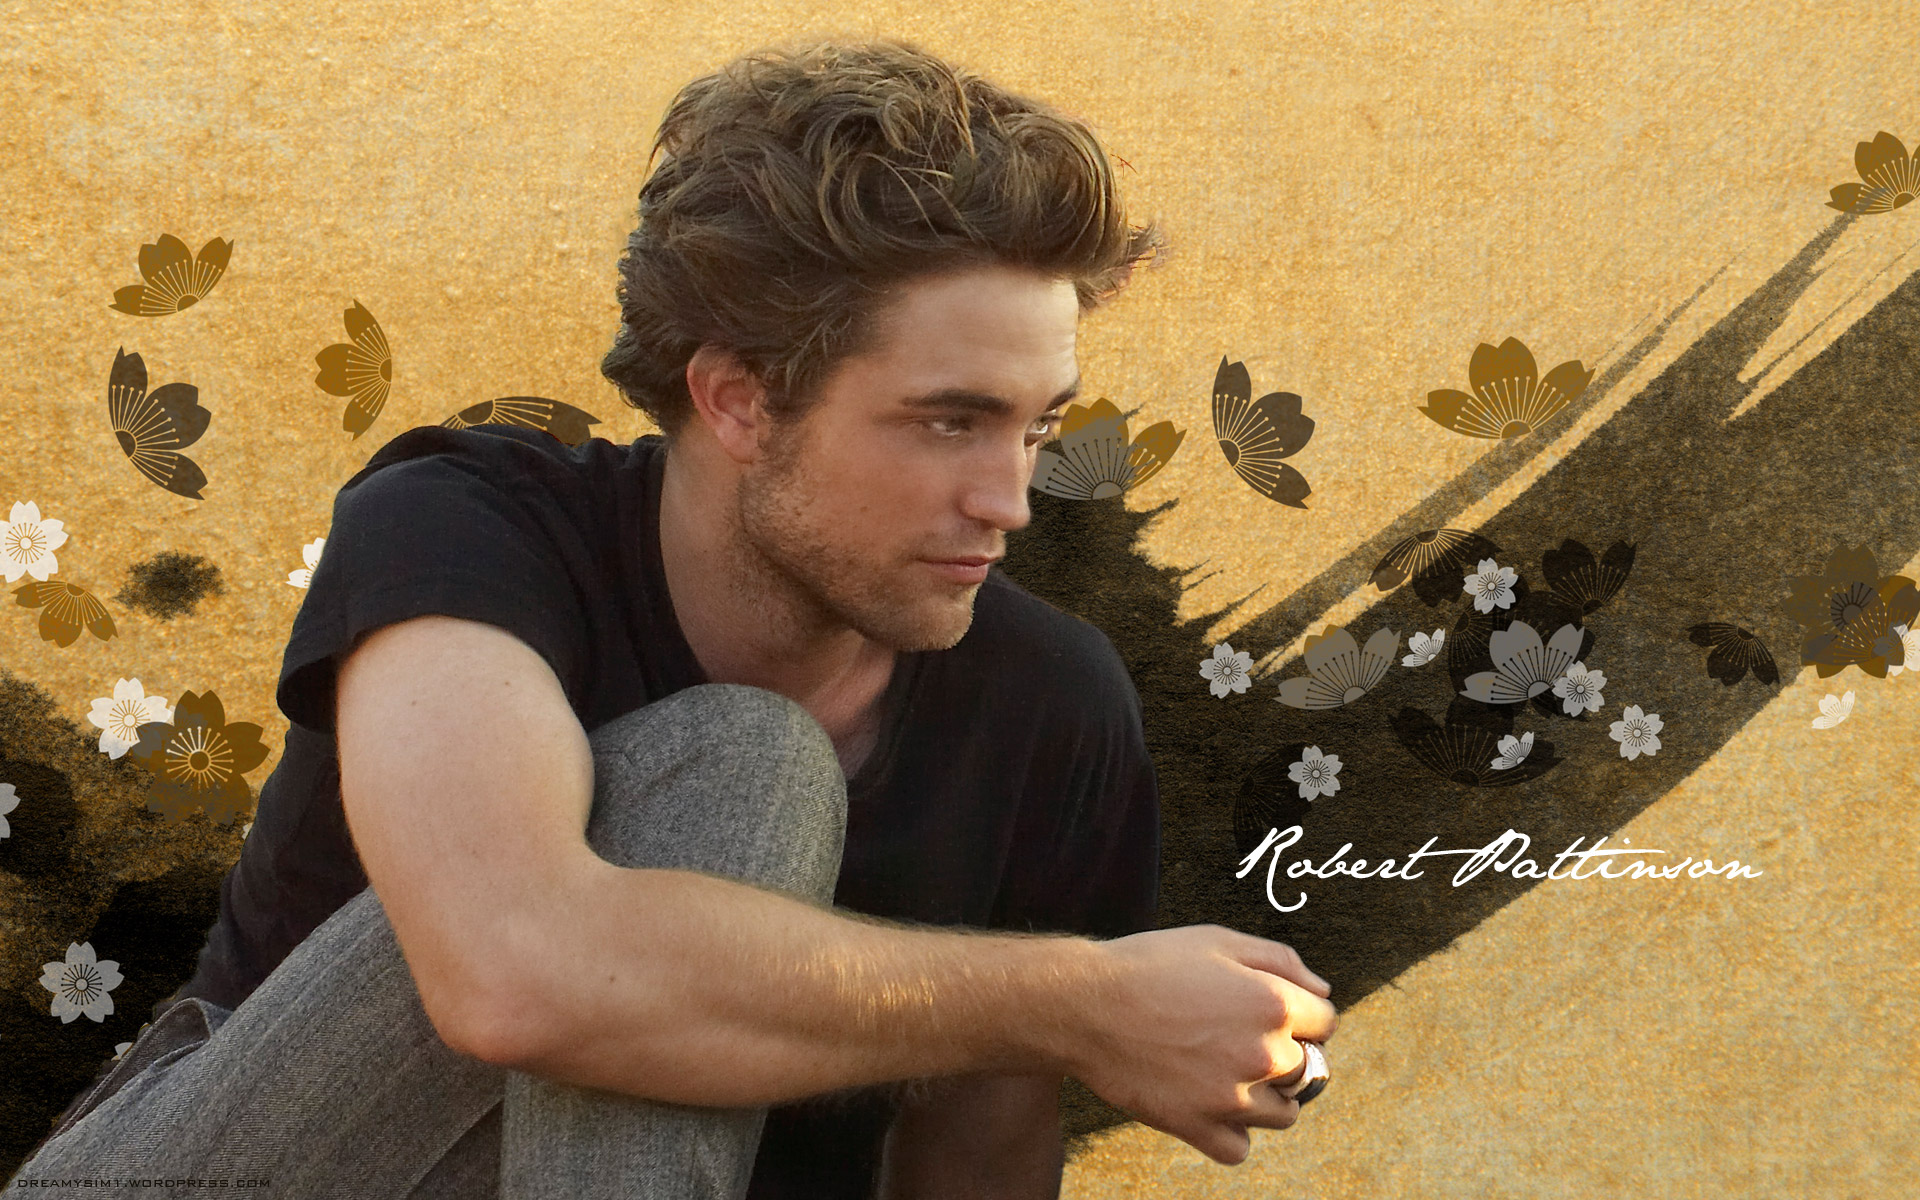 robert pattinson vanity fair pictures 2011. New Robert Pattinson wallpaper